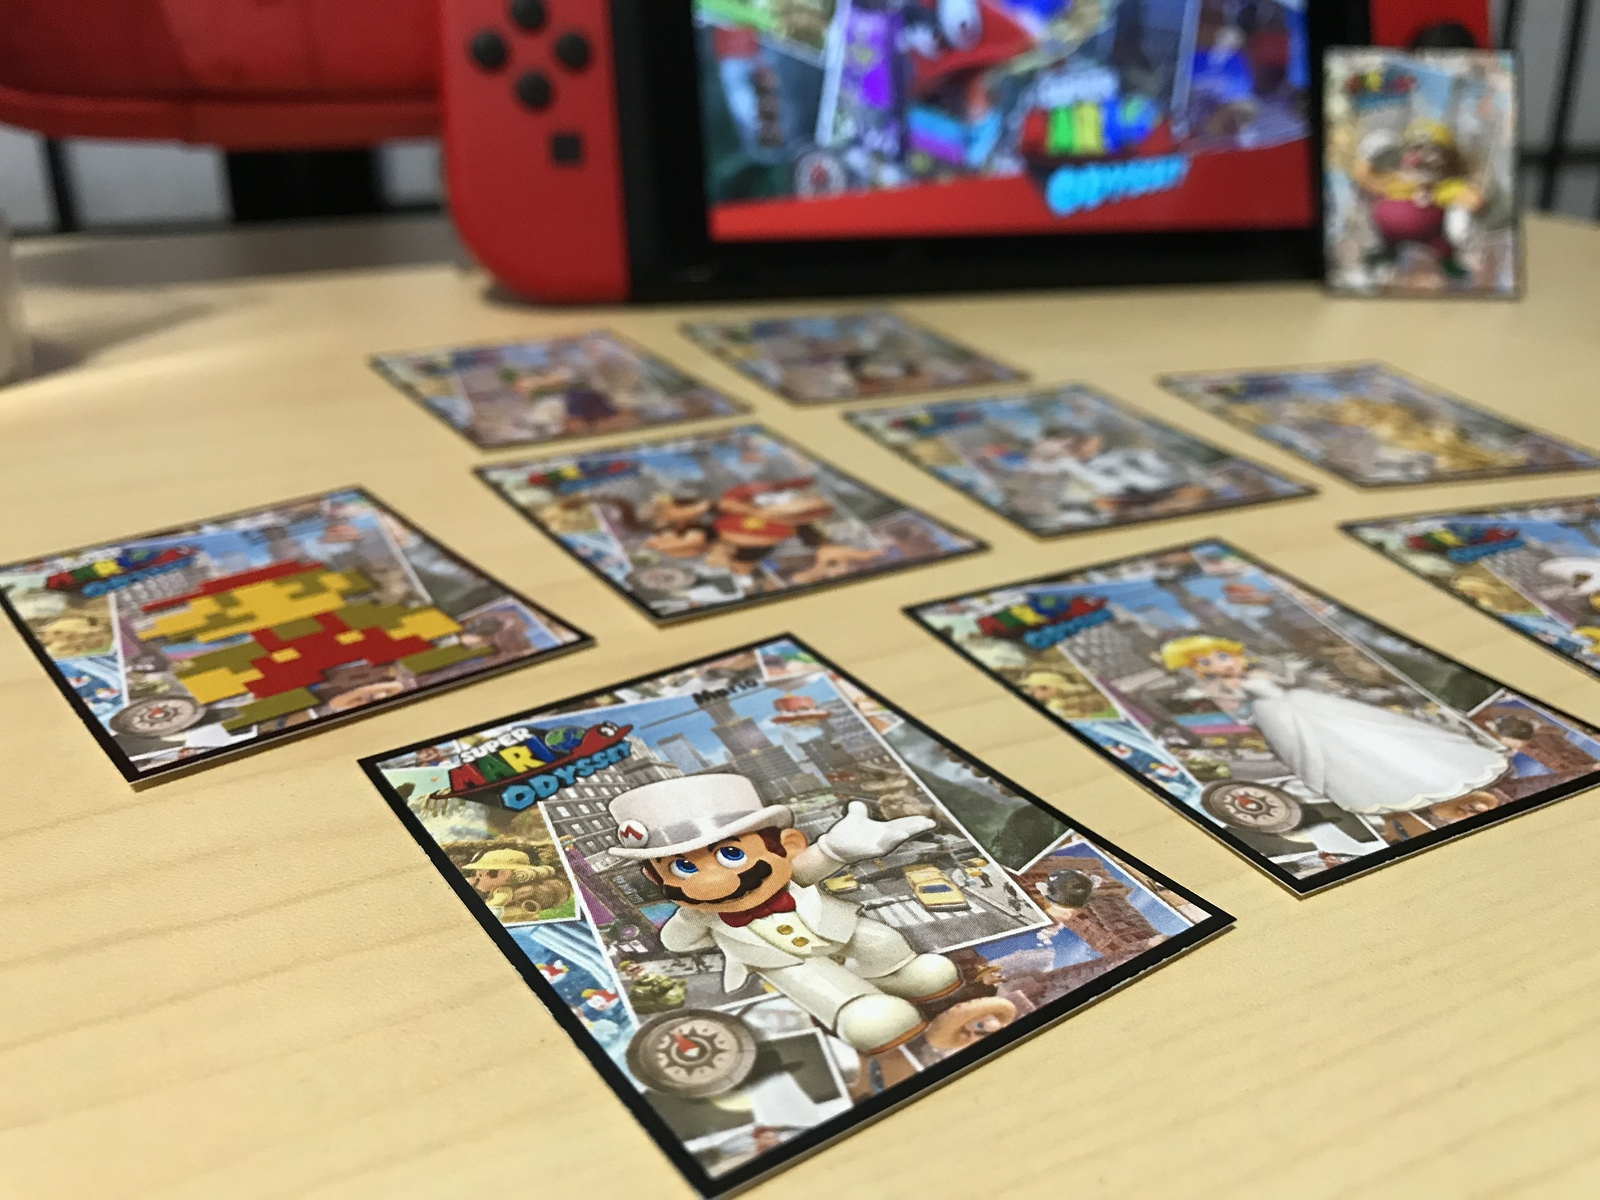 photograph regarding Printable Amiibo Cards called Mini Tremendous Mario Odyssey Amiibo Playing cards Comprehensive and 50 identical products and solutions